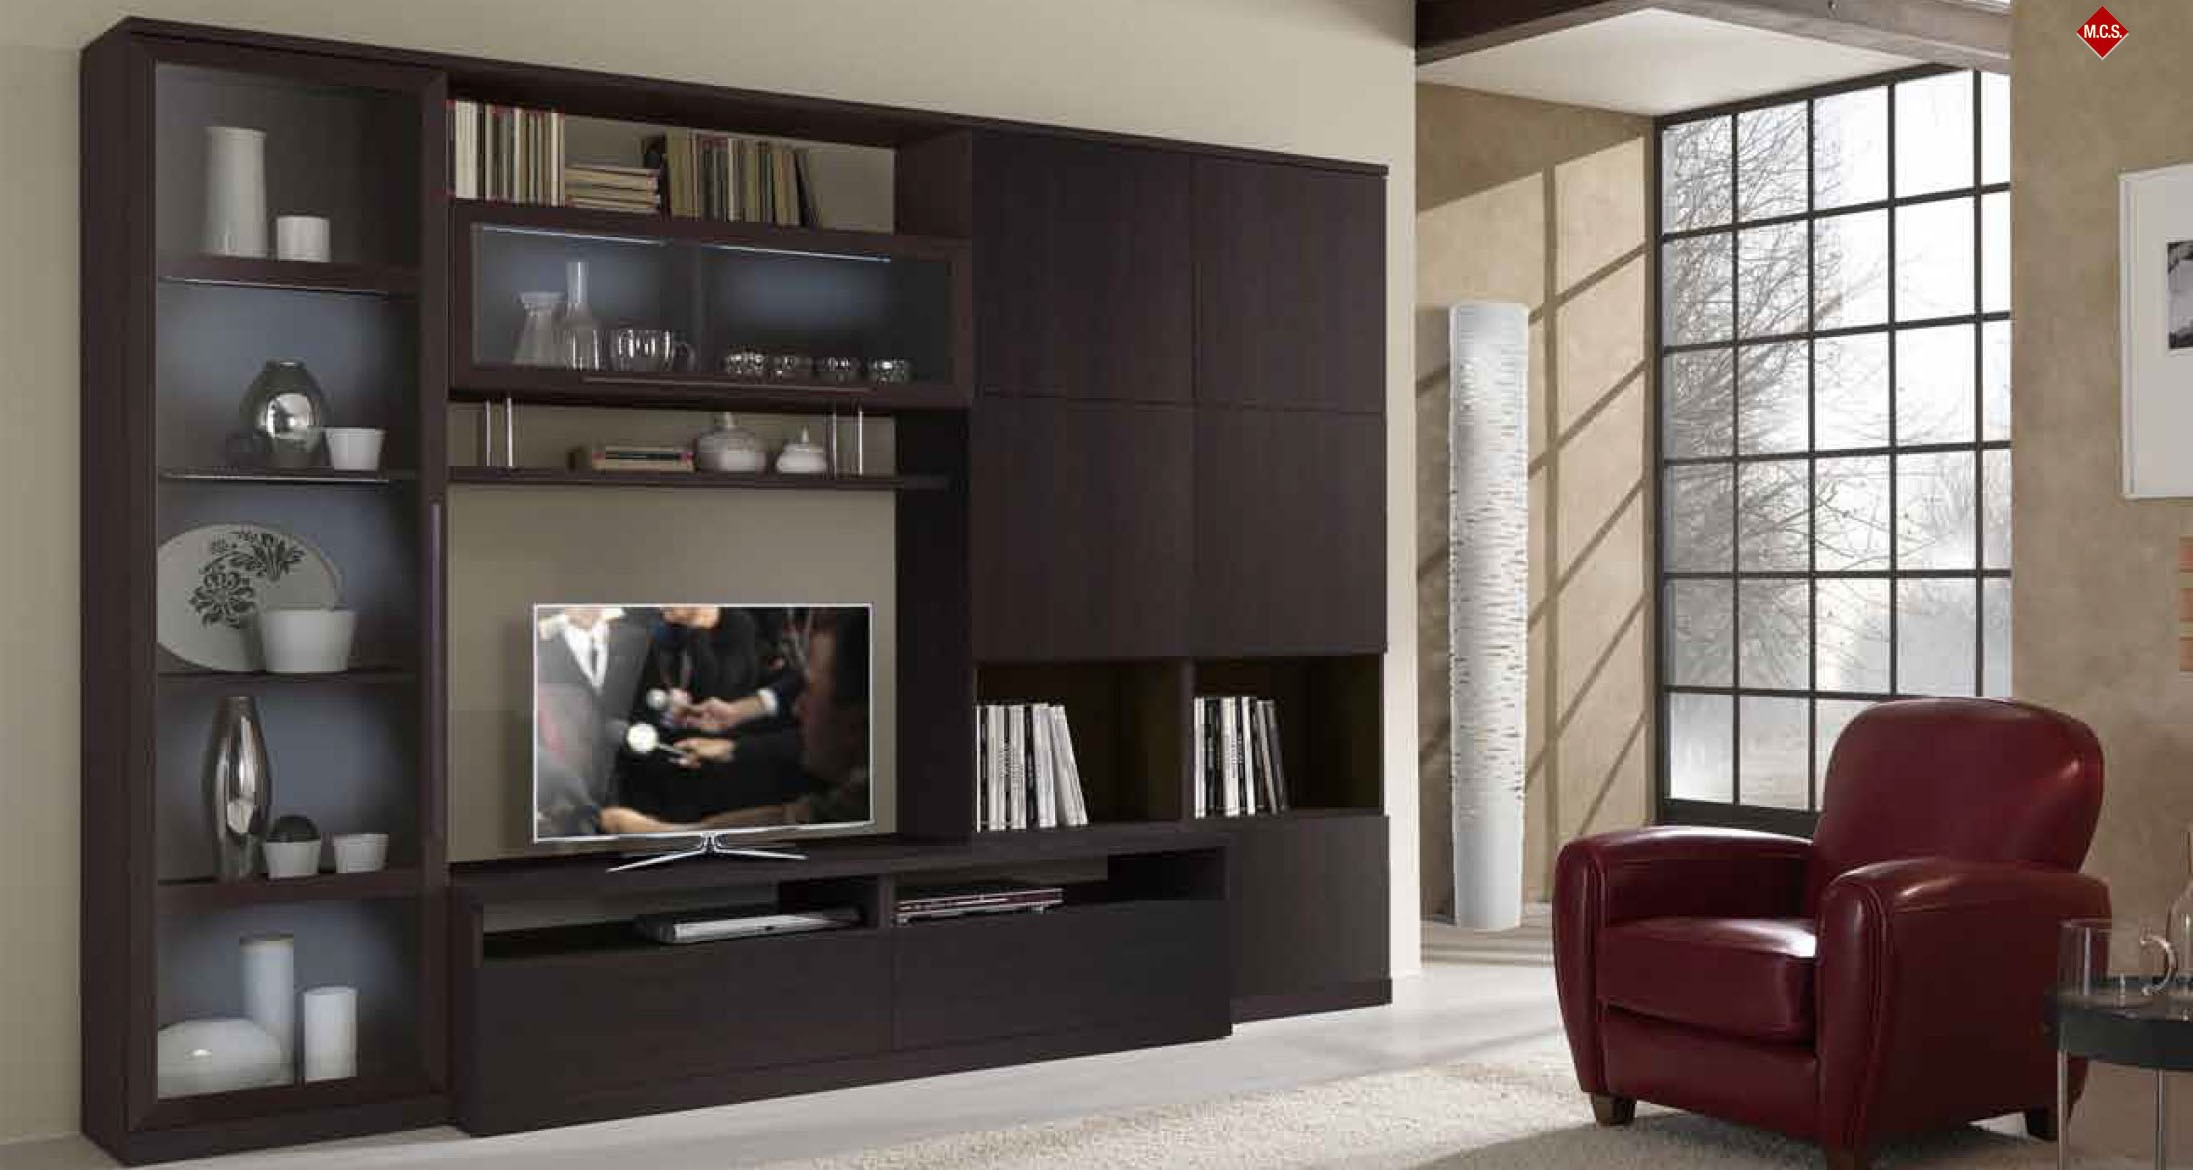 Living Room Furniture Tv Units 20 modern tv unit design ideas for bedroom & living room with pictures